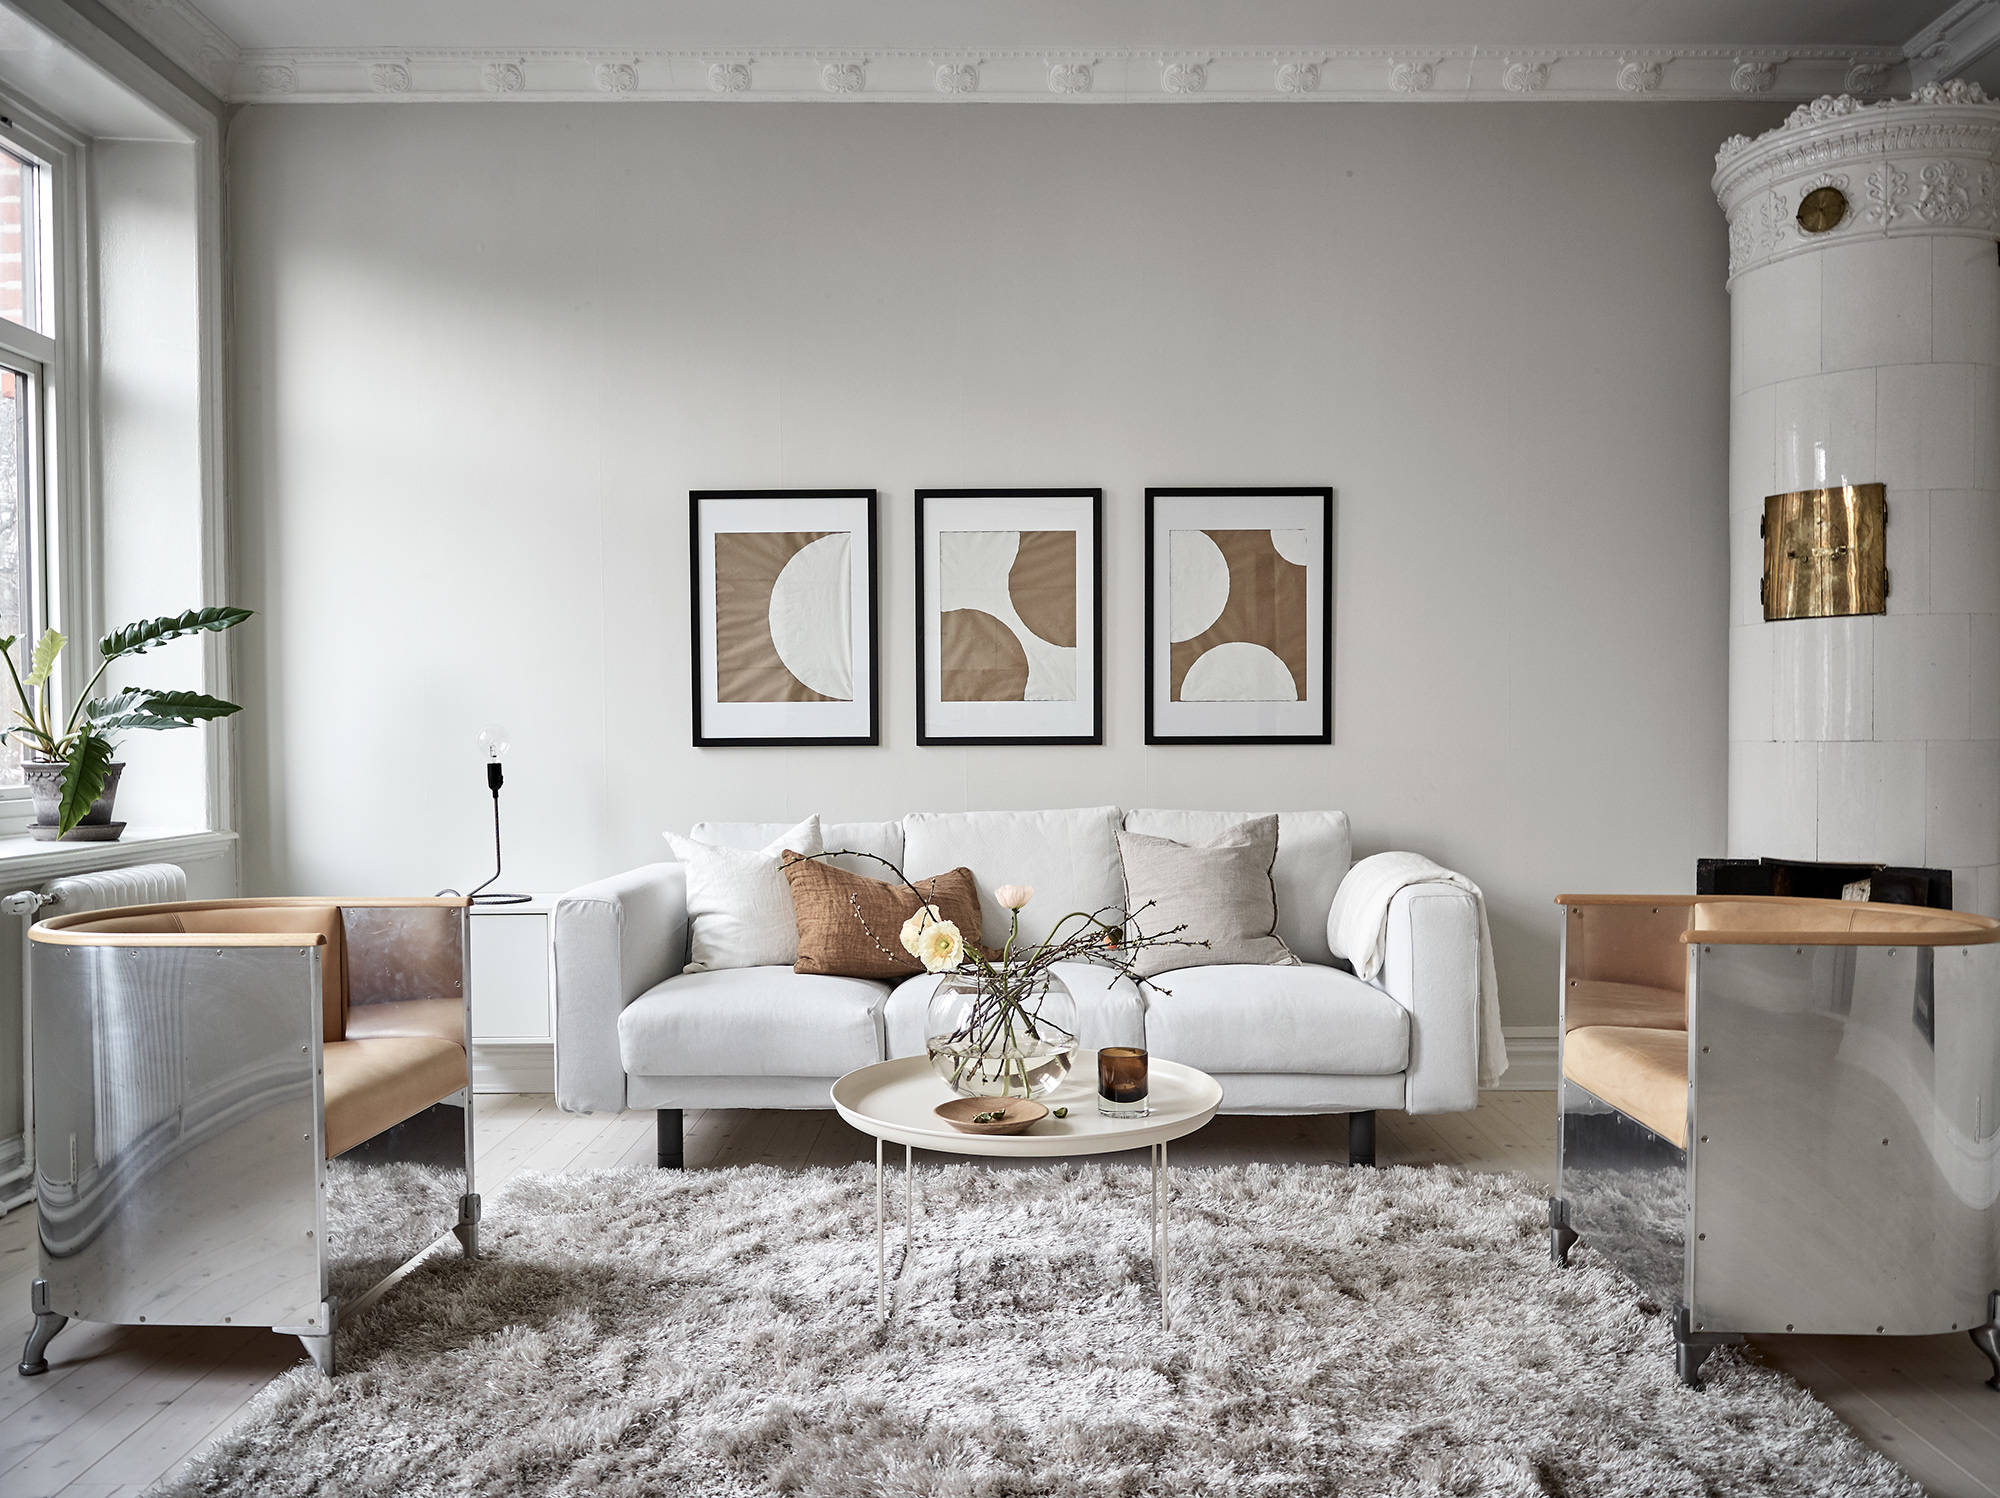 A warm greige home coco lapine designcoco lapine design - Decoracion nordica salon ...